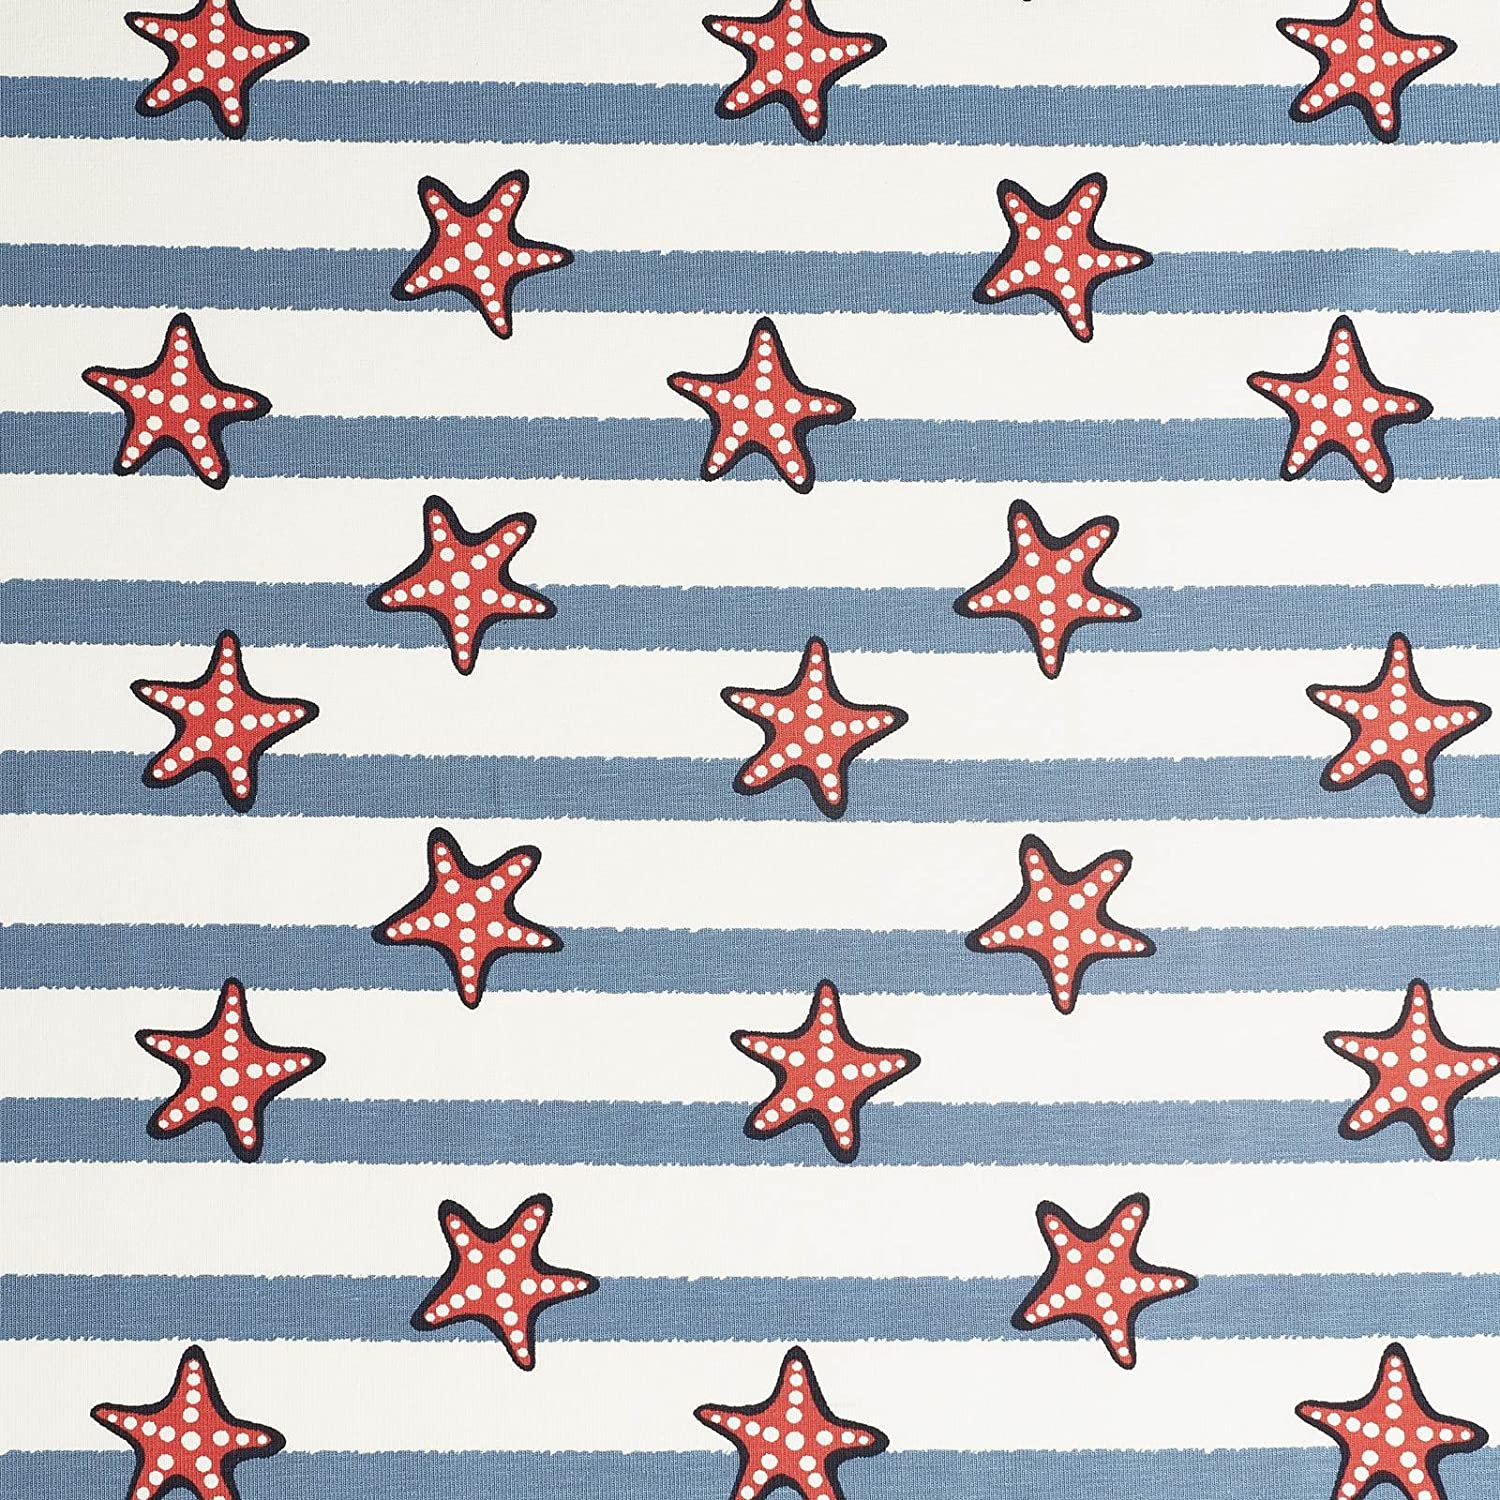 b86697a219c4 Laura - cotton jersey fabric with a maritime print - children's ...